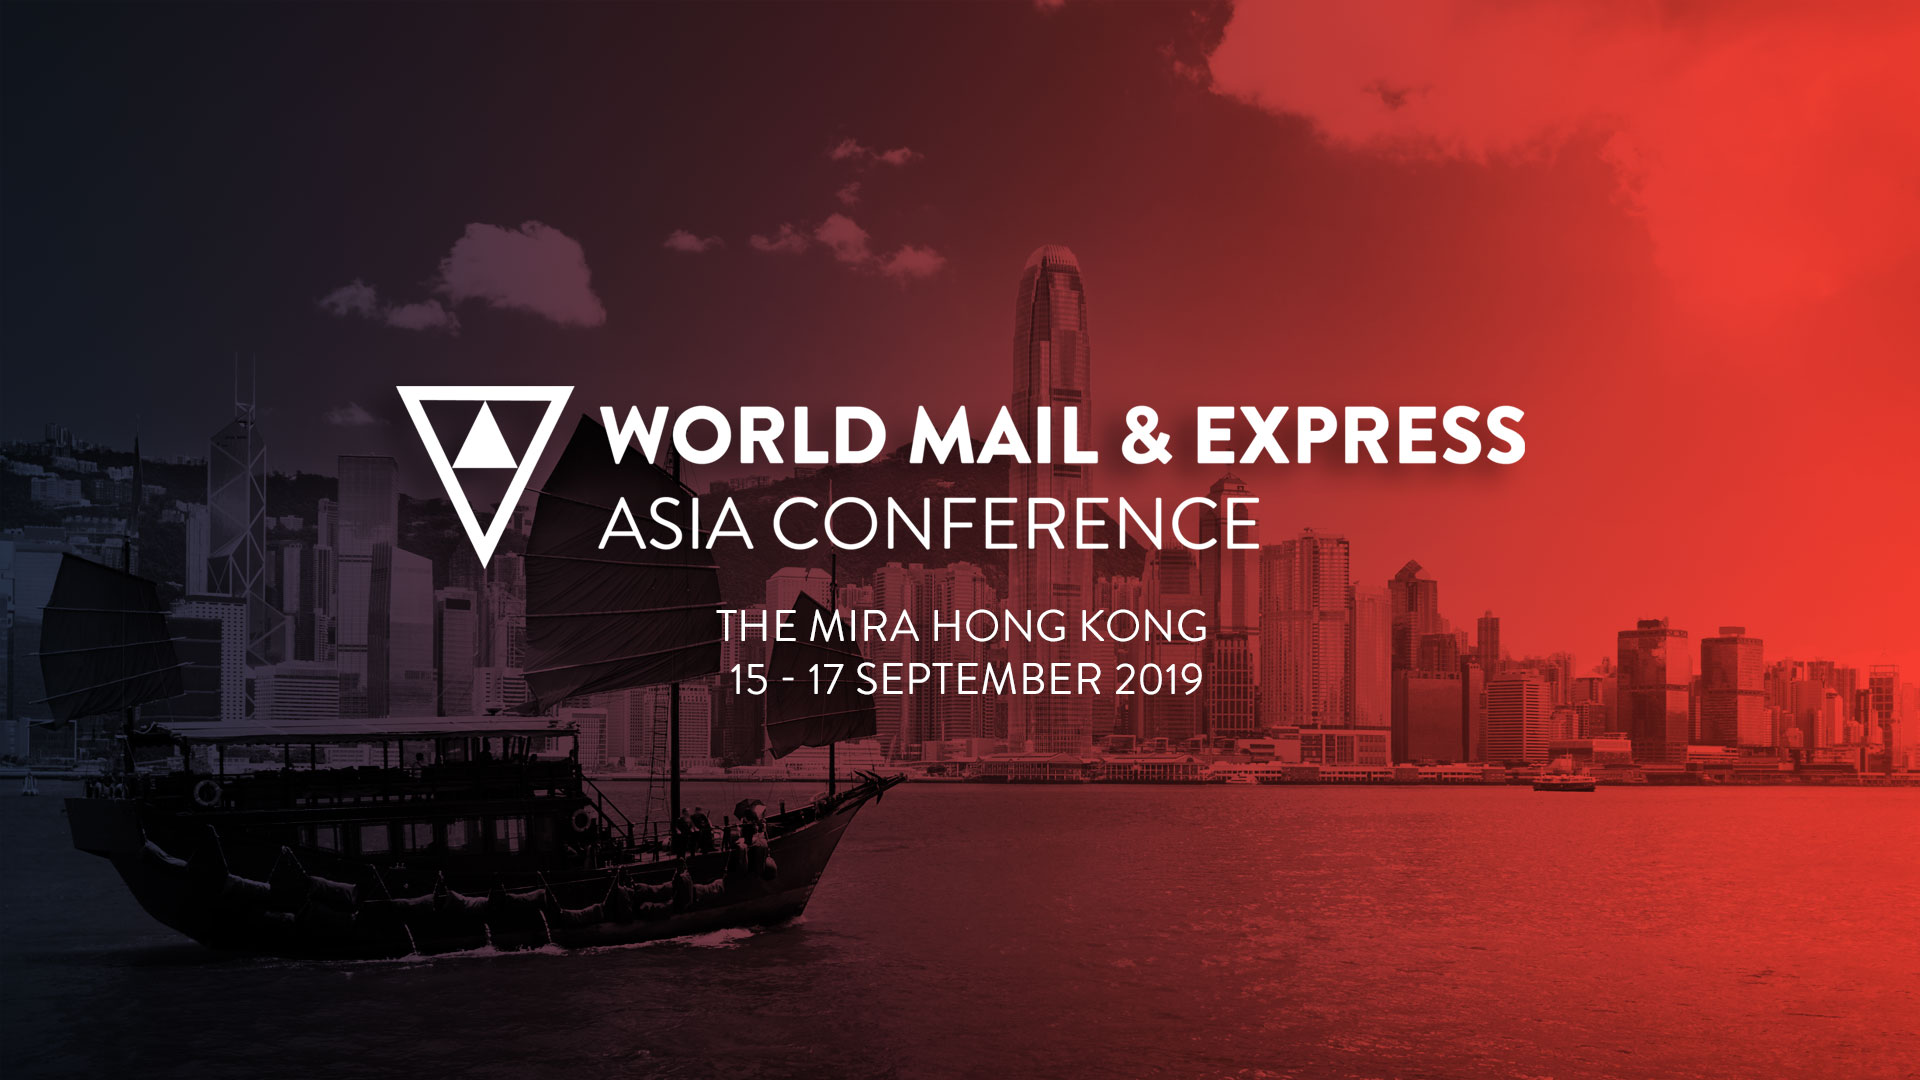 World Mail & Express (WMX) Asia Conference in Hong Kong